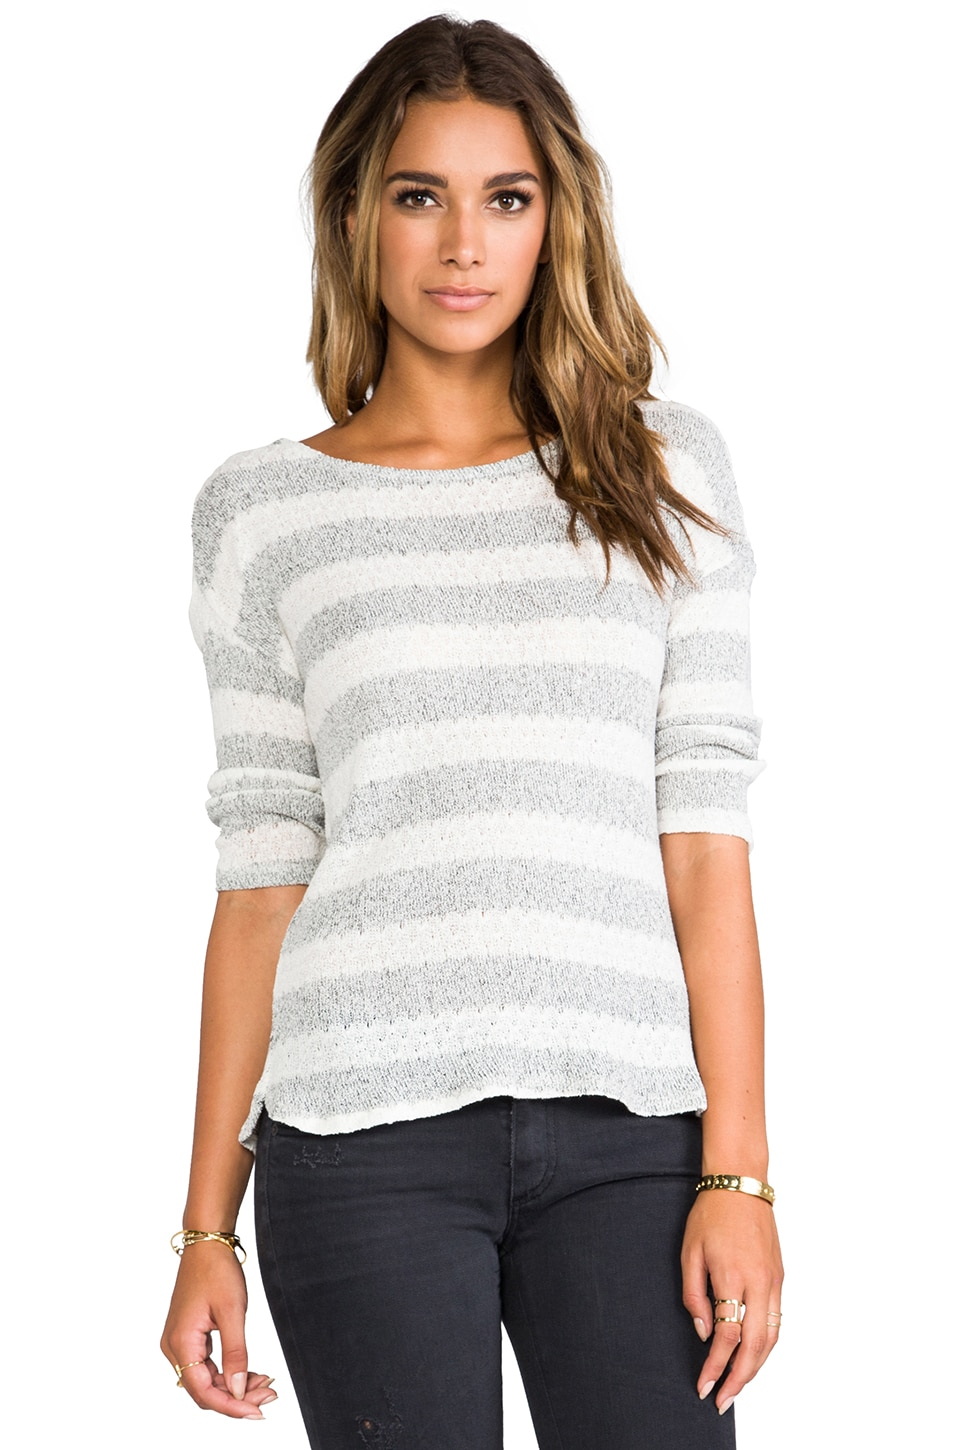 Soft Joie Nash Stripe Sweater in Caviar/Light Heather Grey